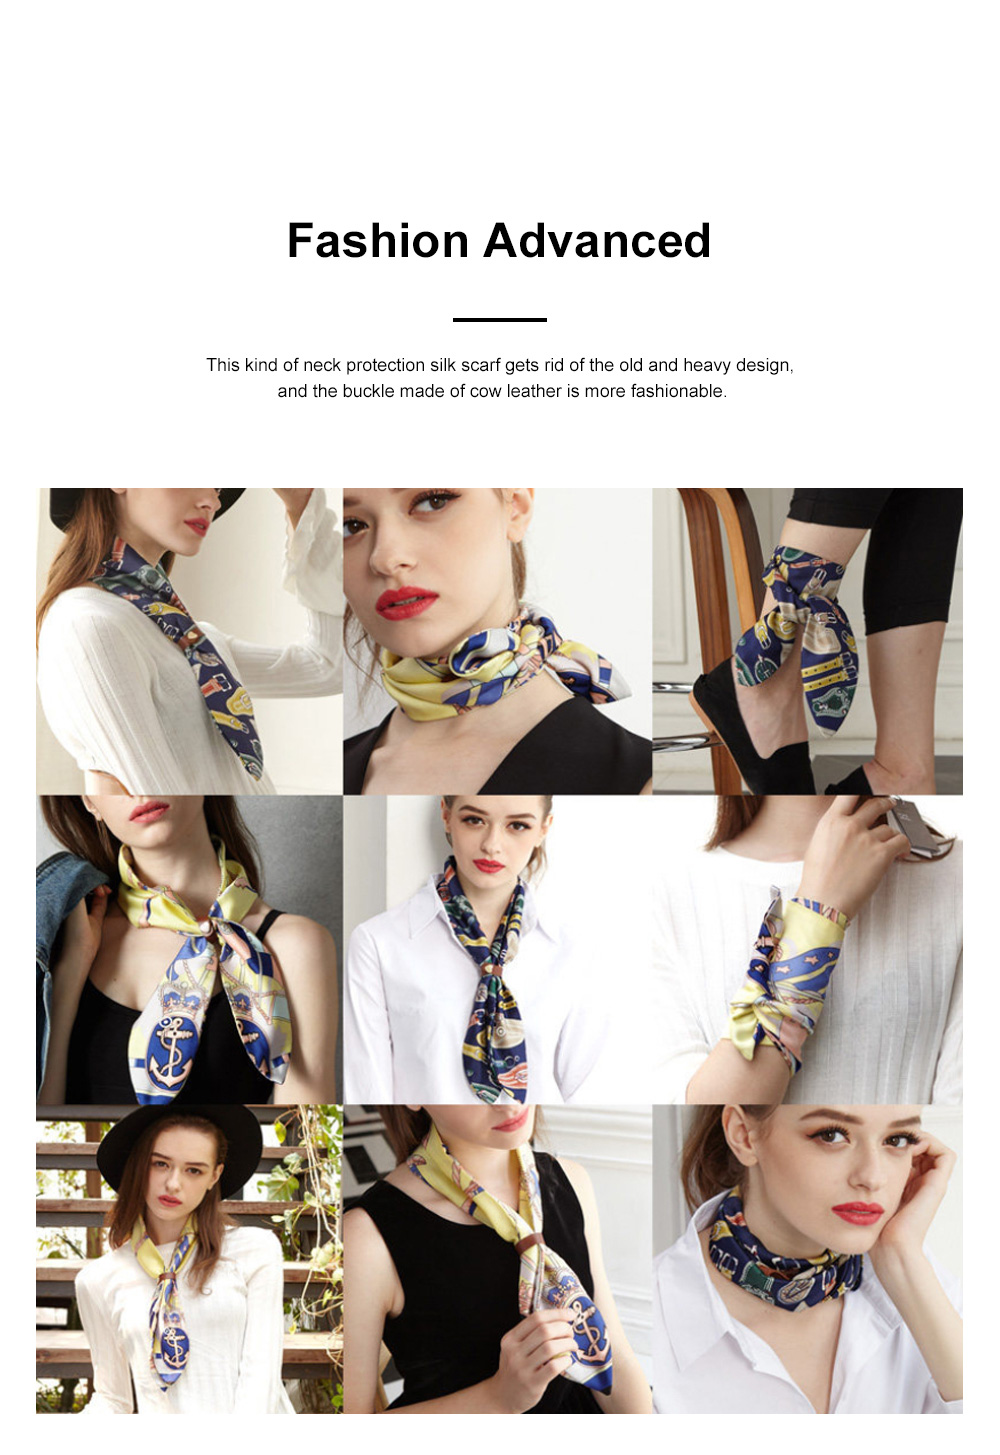 FLEXWARM Simulated Silk Intelligent Neck Protection Women's Silk Scarf Hot Short Style Versatile Scarf in Autumn and Winter 5